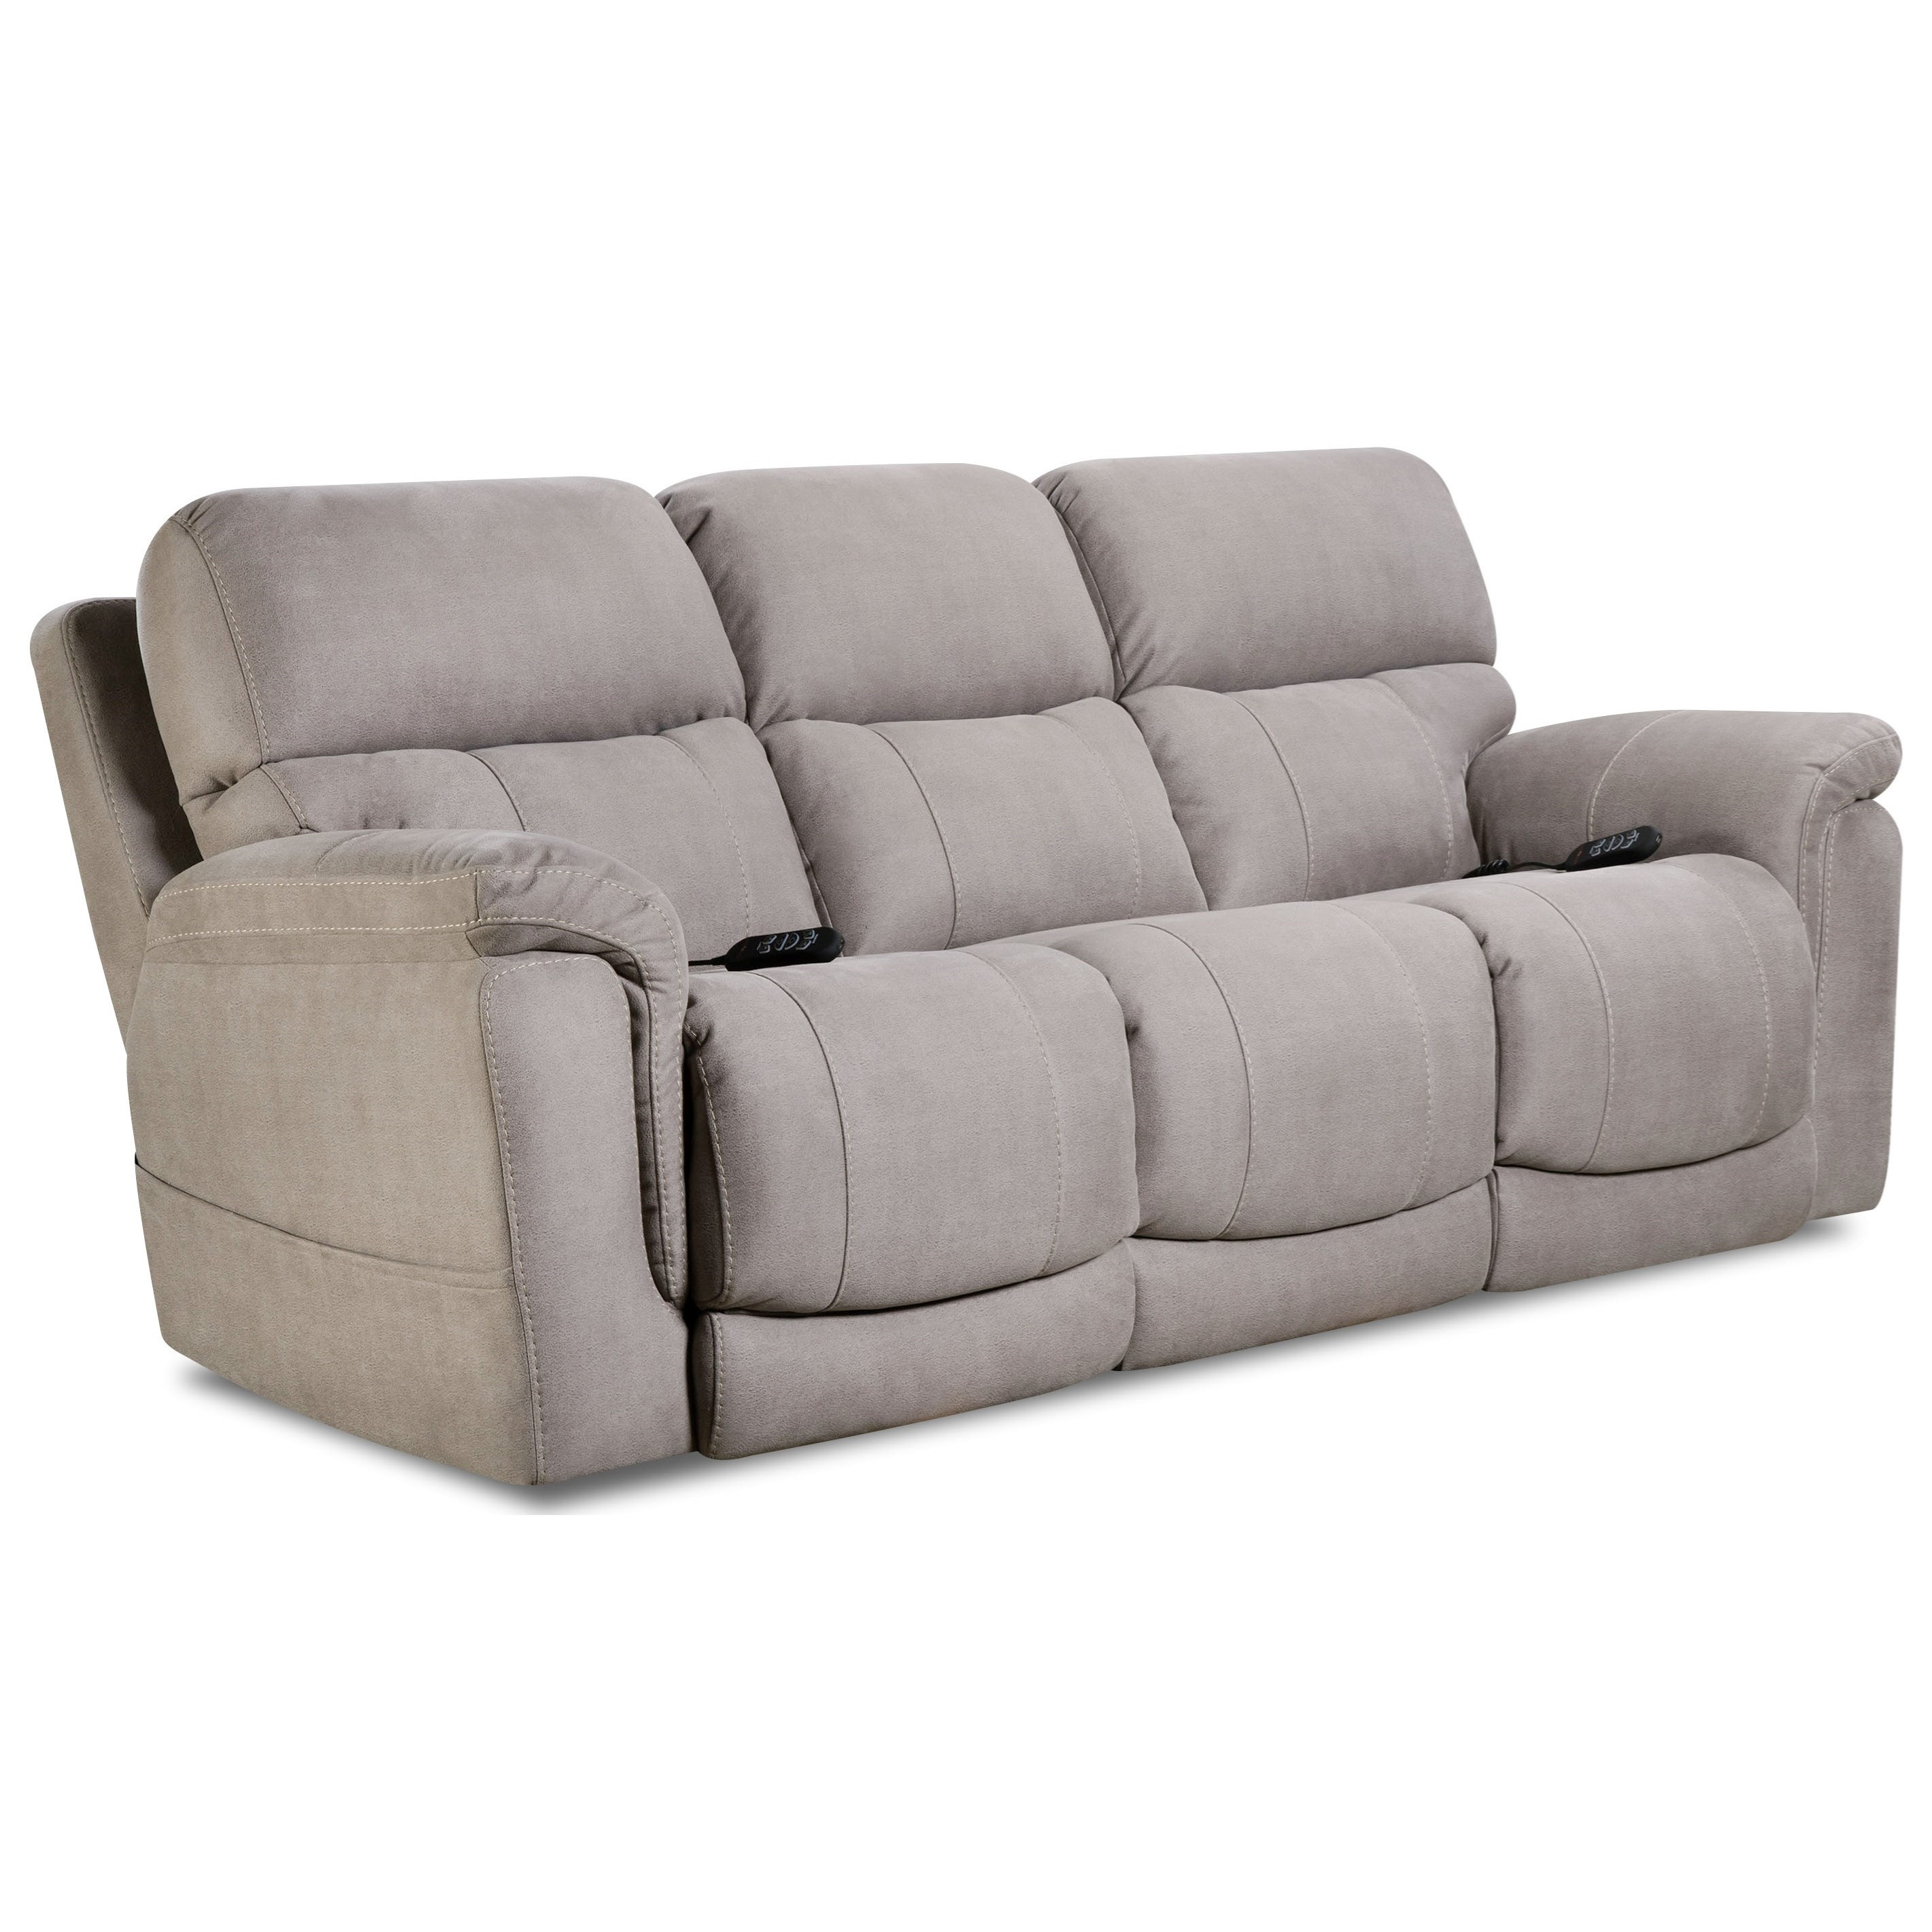 175 Collection Double Reclining Power Sofa by HomeStretch at Pilgrim Furniture City